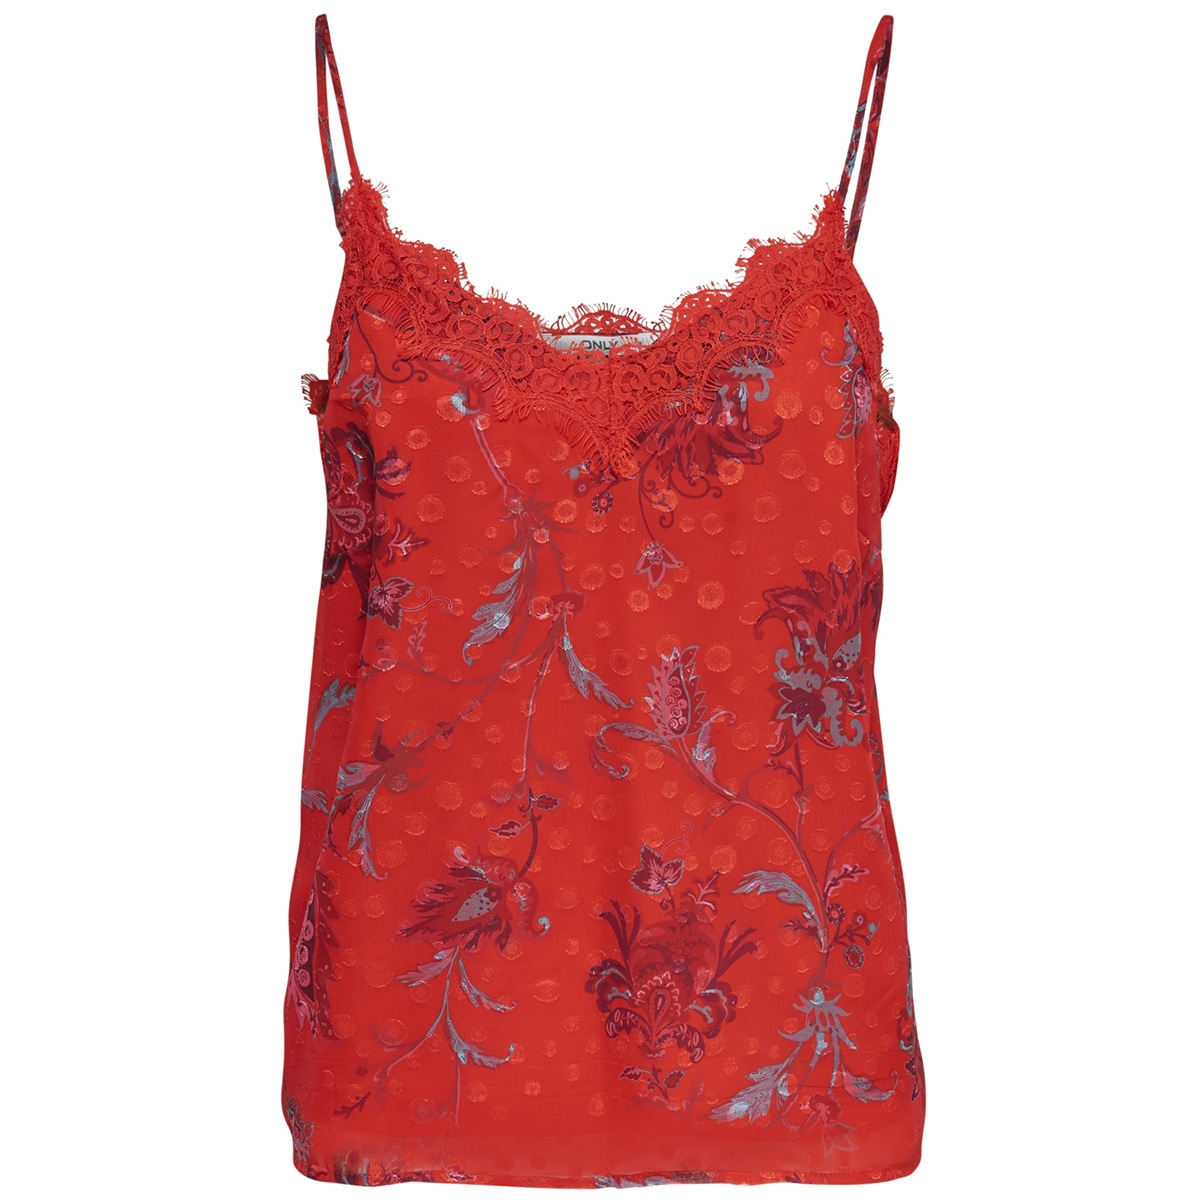 wfceline s/l tank top wvn 15173902 only top fiery red/paisley aop